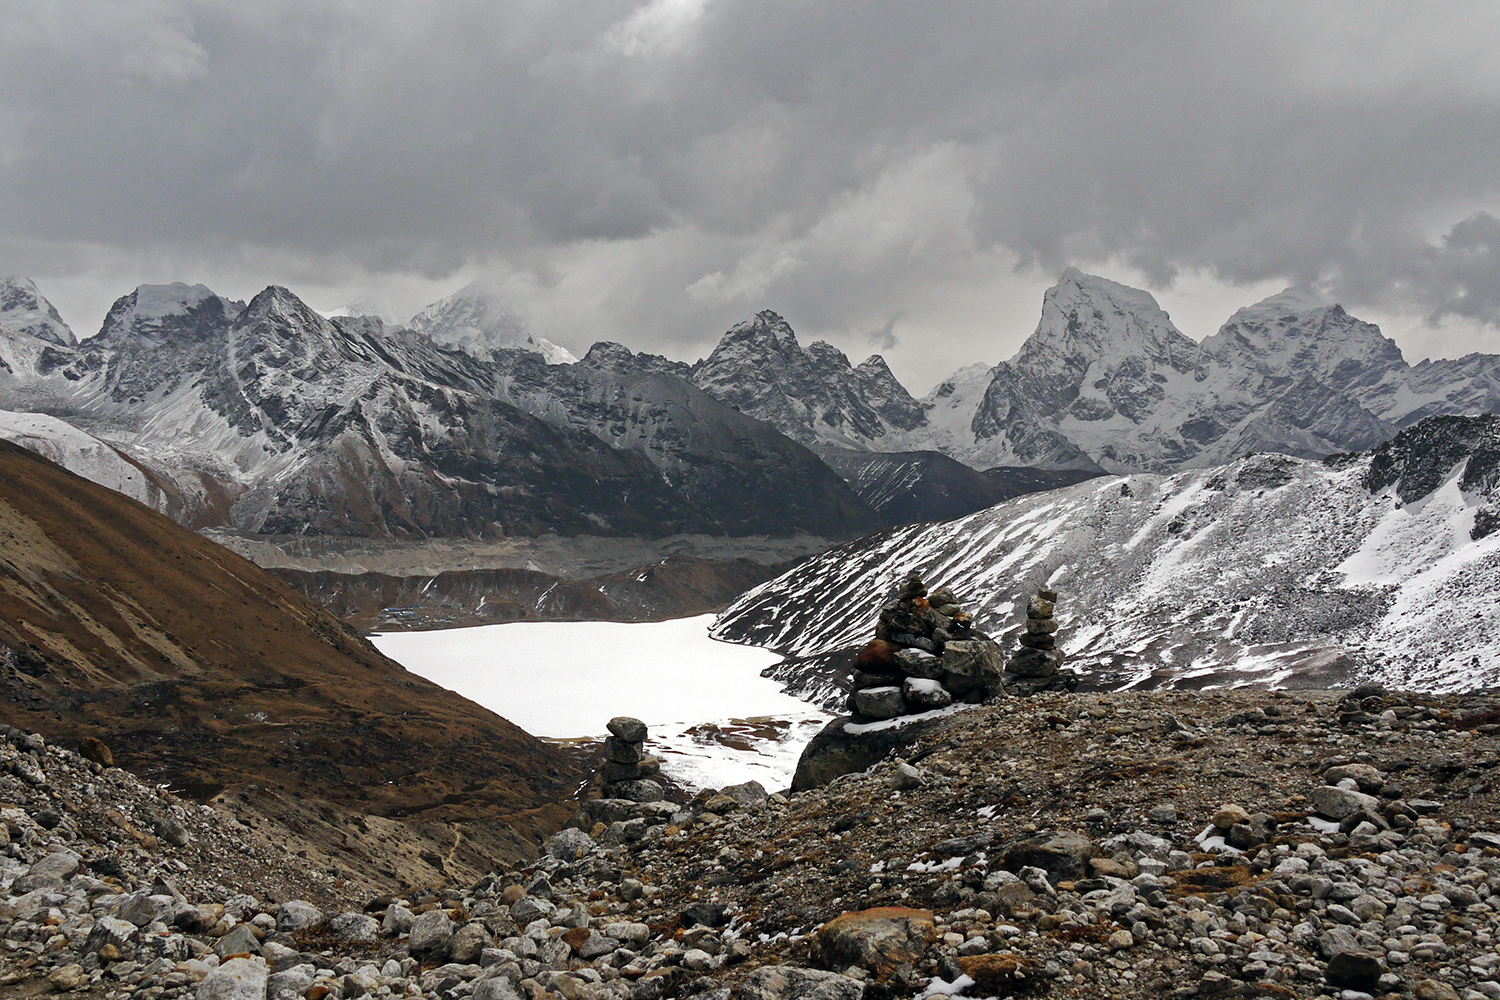 Looking back over Gokyo Lake from the Renjo La Pass at an altitude of 5,400m